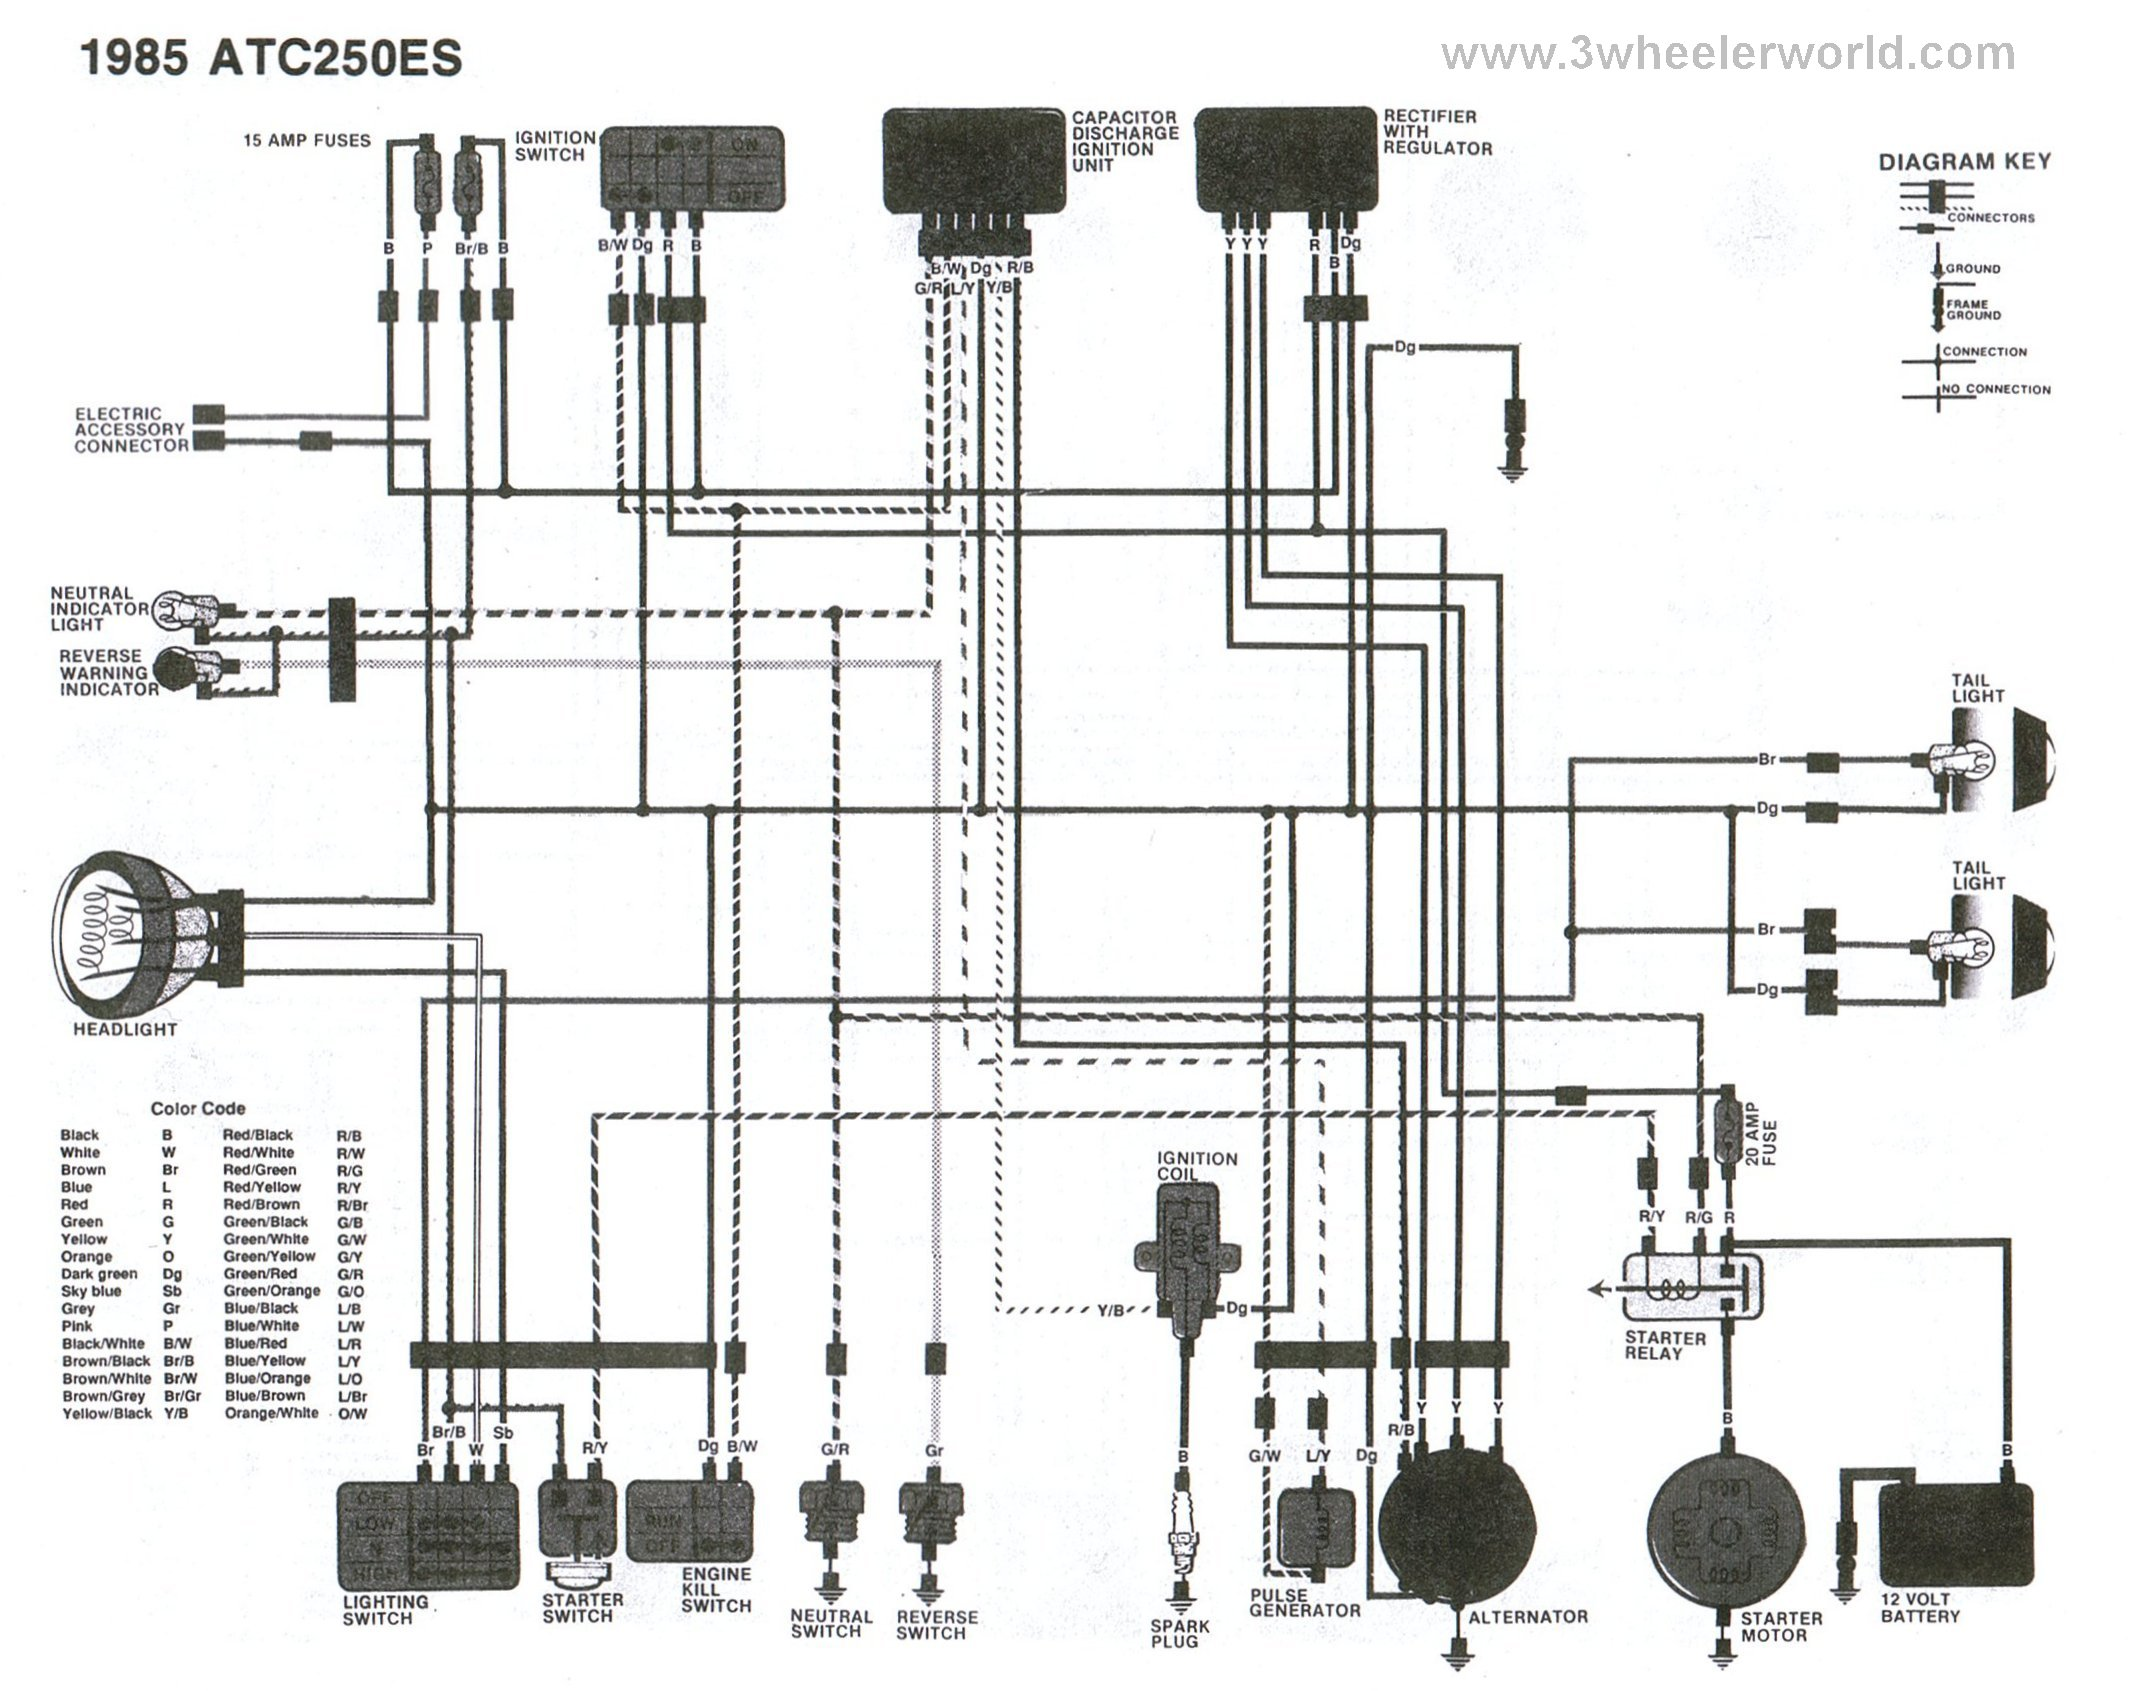 ATC250ESx85 honda big red wiring diagram wiring schematic for 1982 atc200e honda trx200 wiring diagram at n-0.co